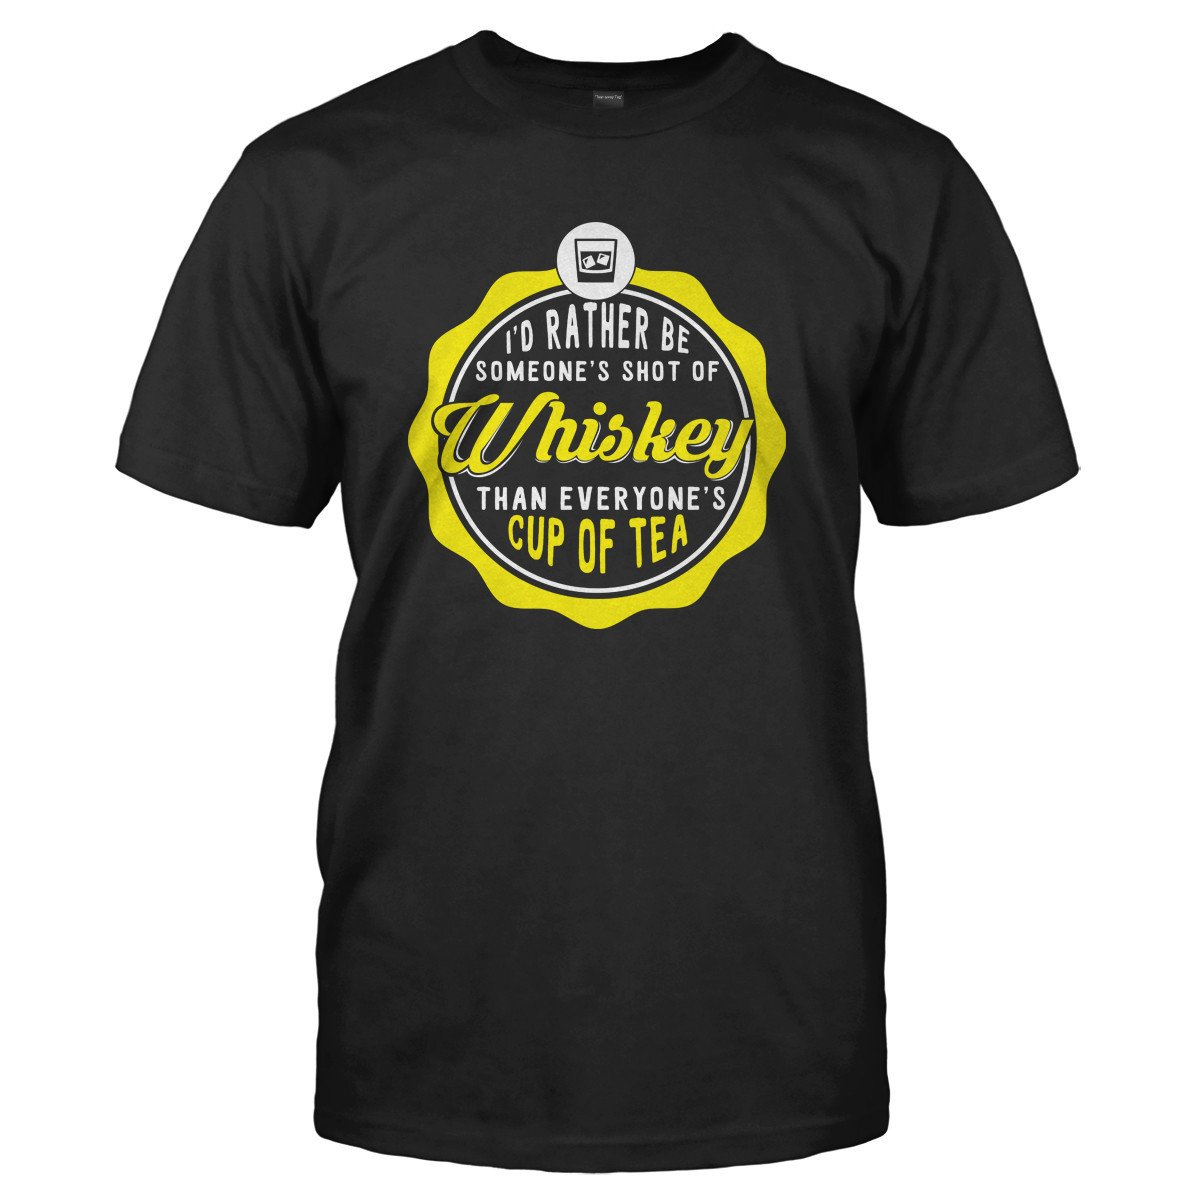 I'd Rather Be Someone's Shot of Whiskey - T Shirt